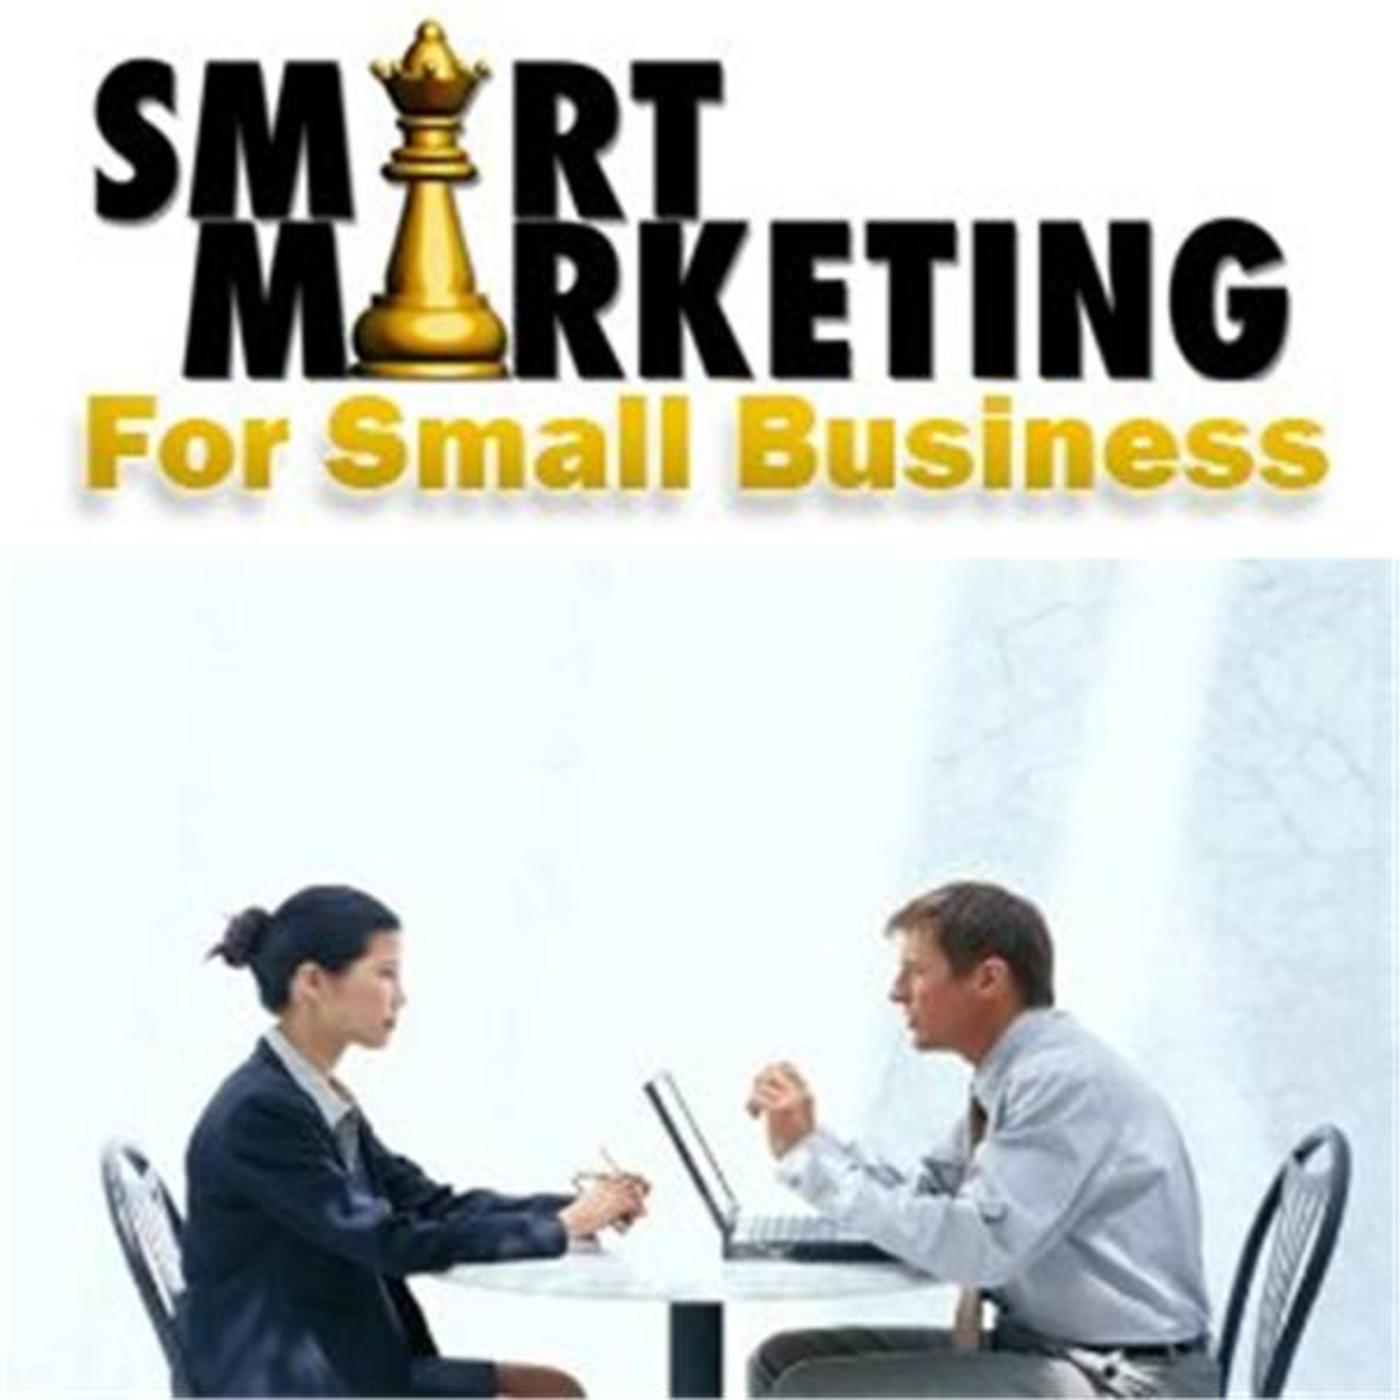 Smart Marketing for Small Business